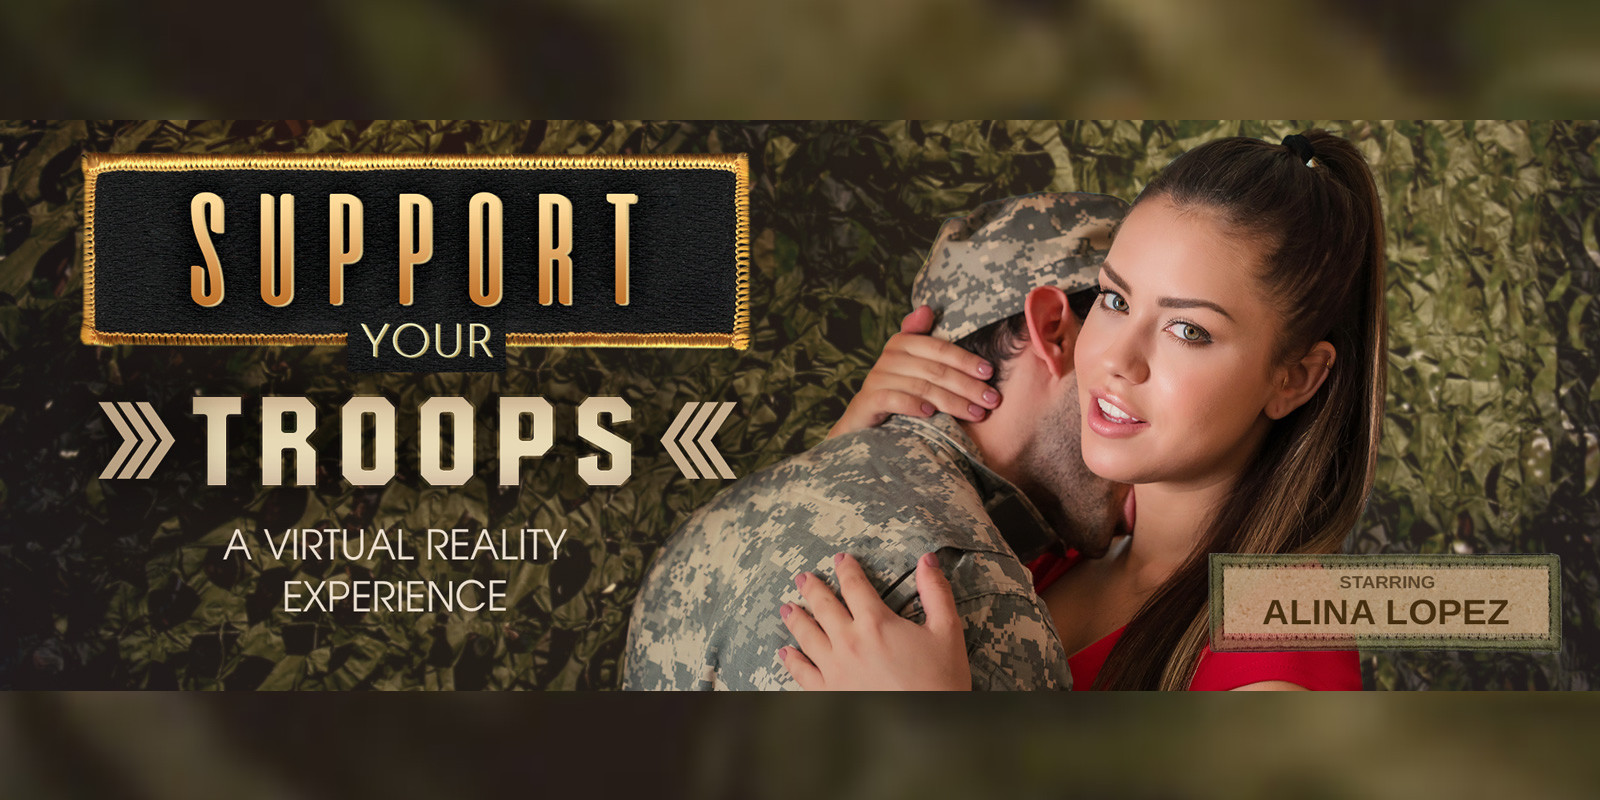 VR Porn Soldier Fucking - Support Your Troops vrbangers vr porn blog virtual reality